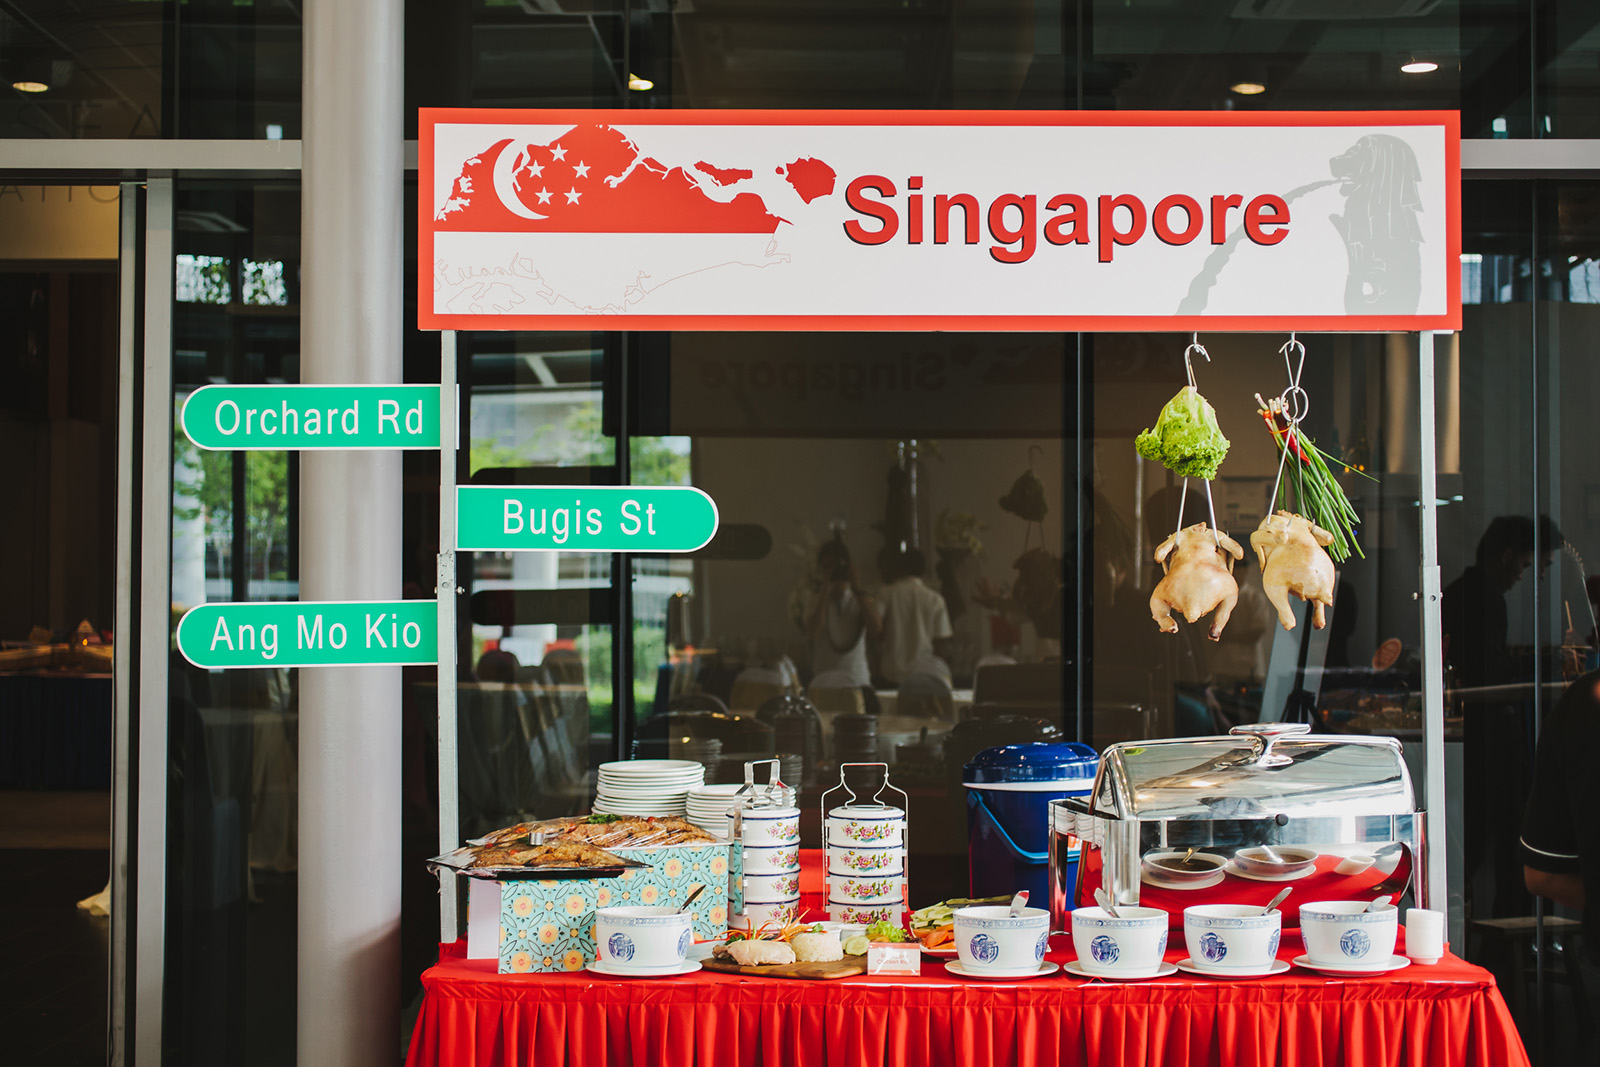 Hawker stalls catering kl food services in